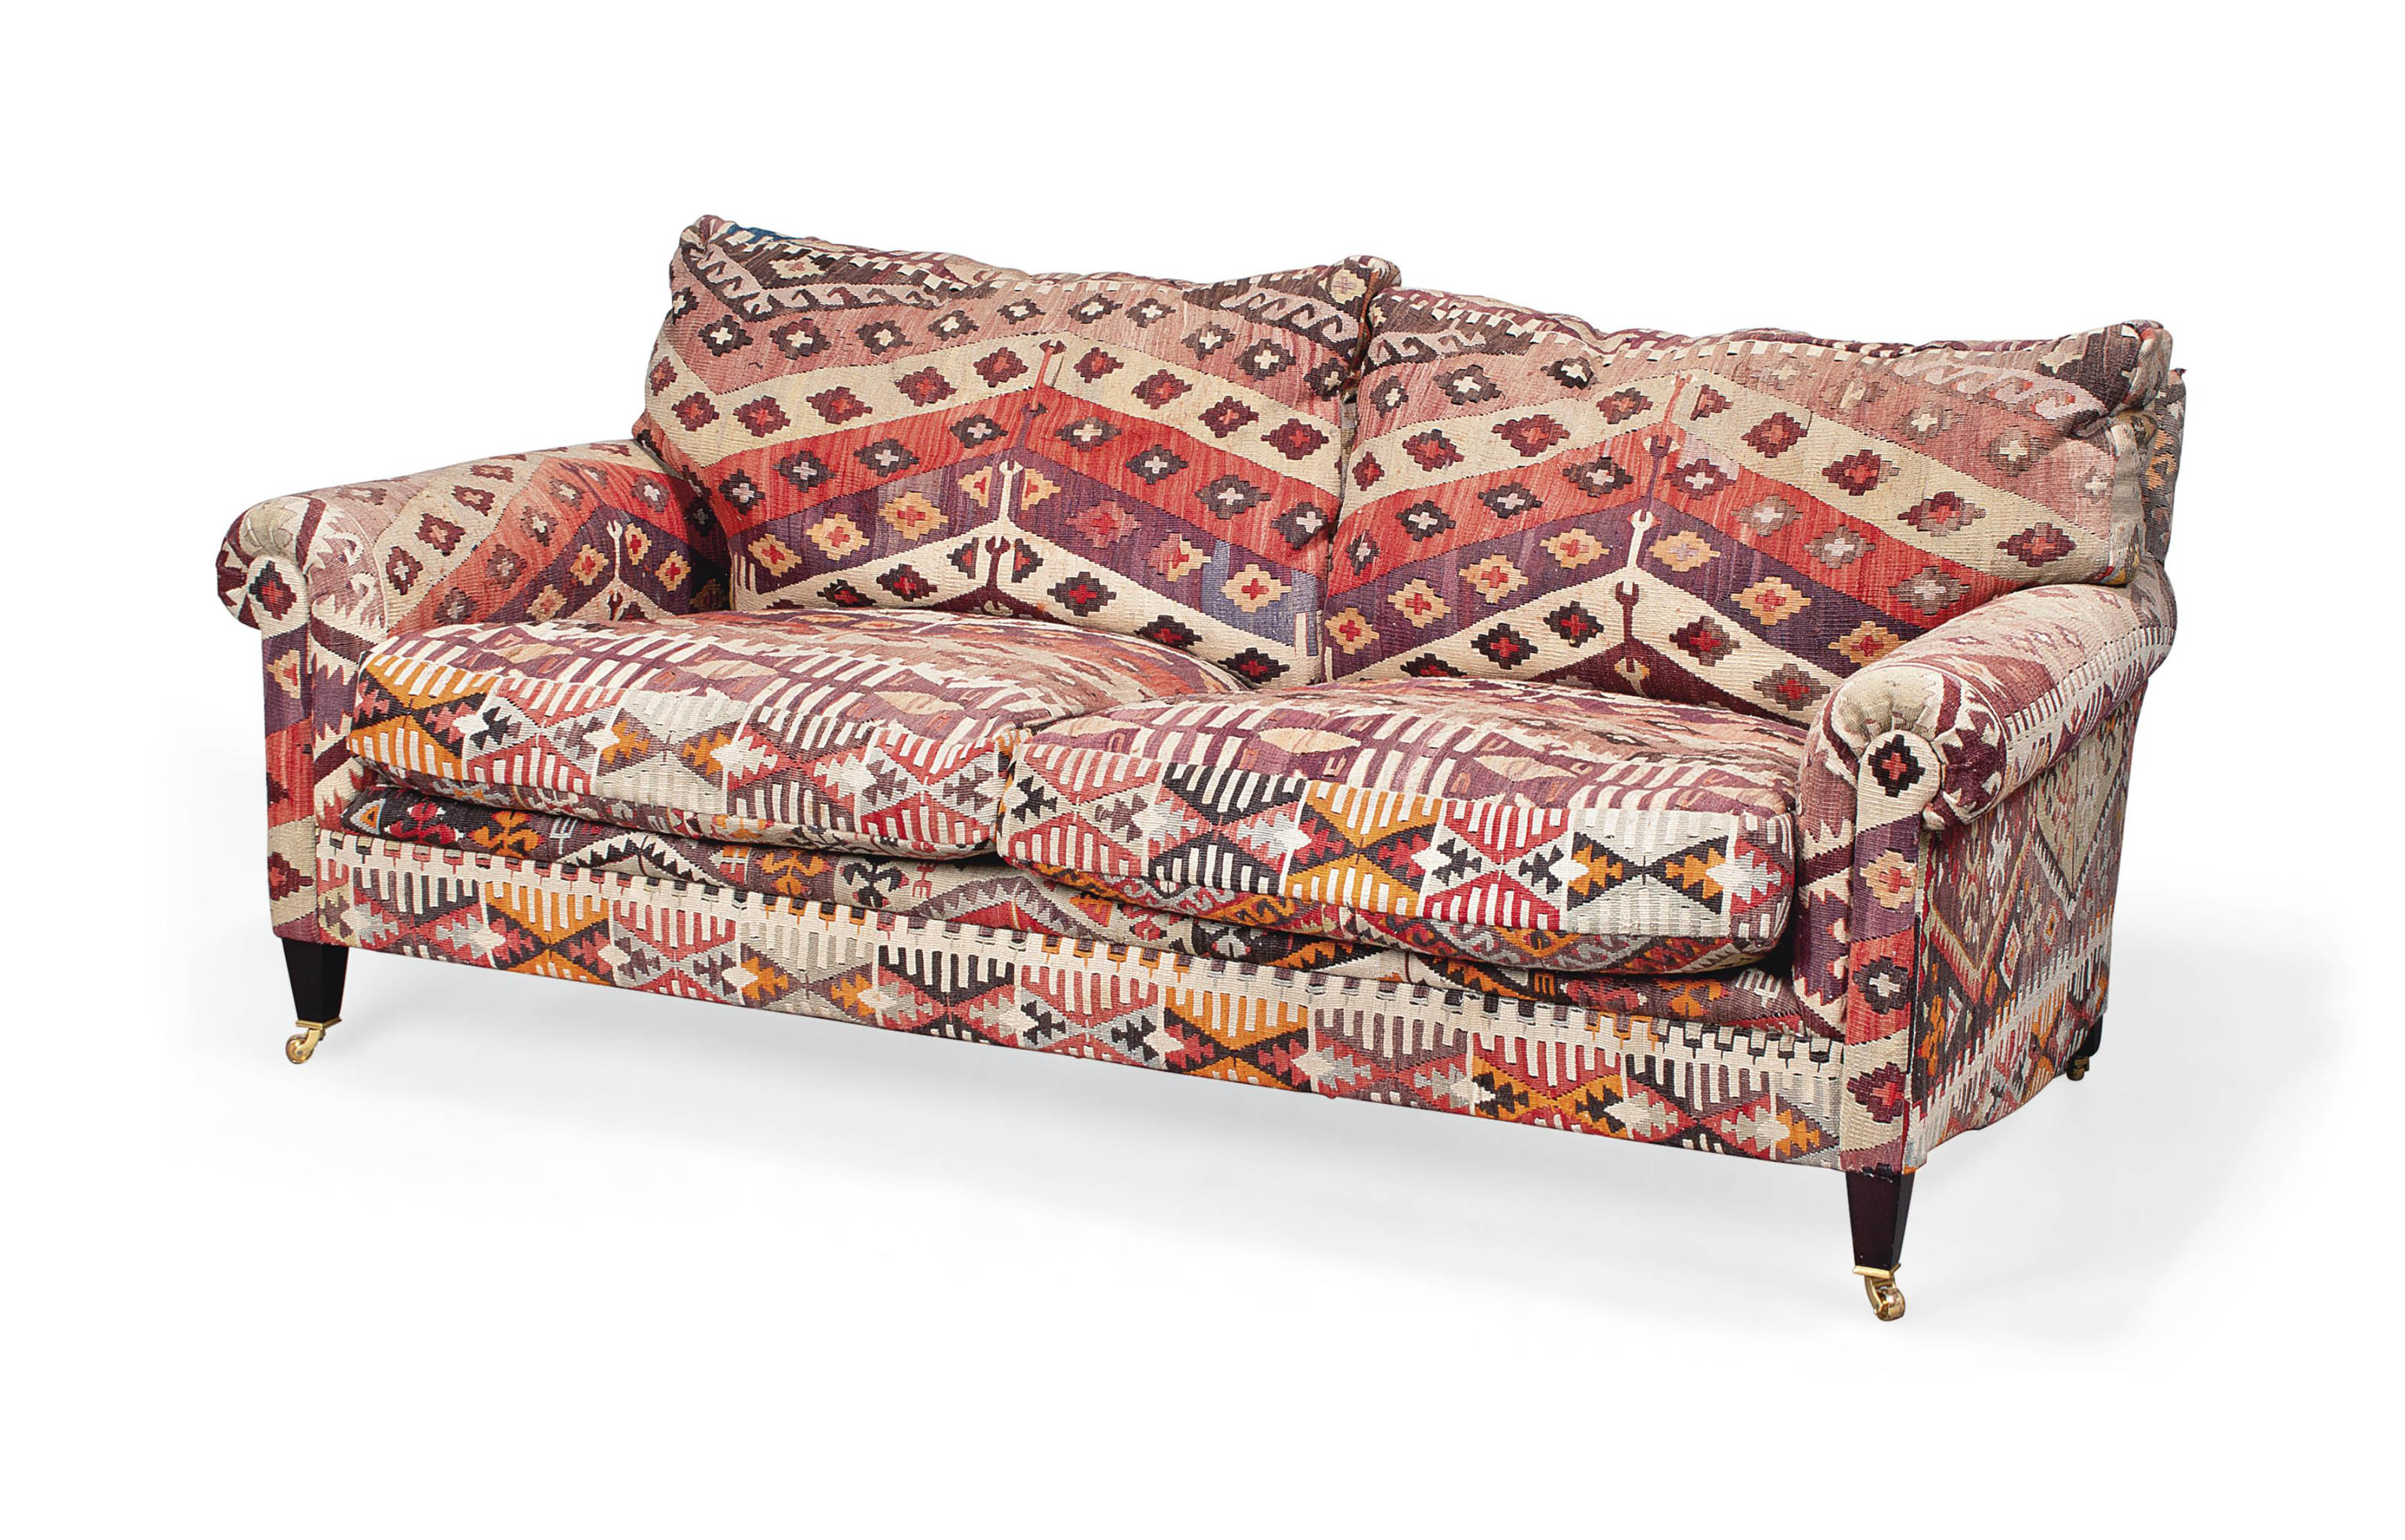 A GEORGE SMITH KILIM UPHOLSTER